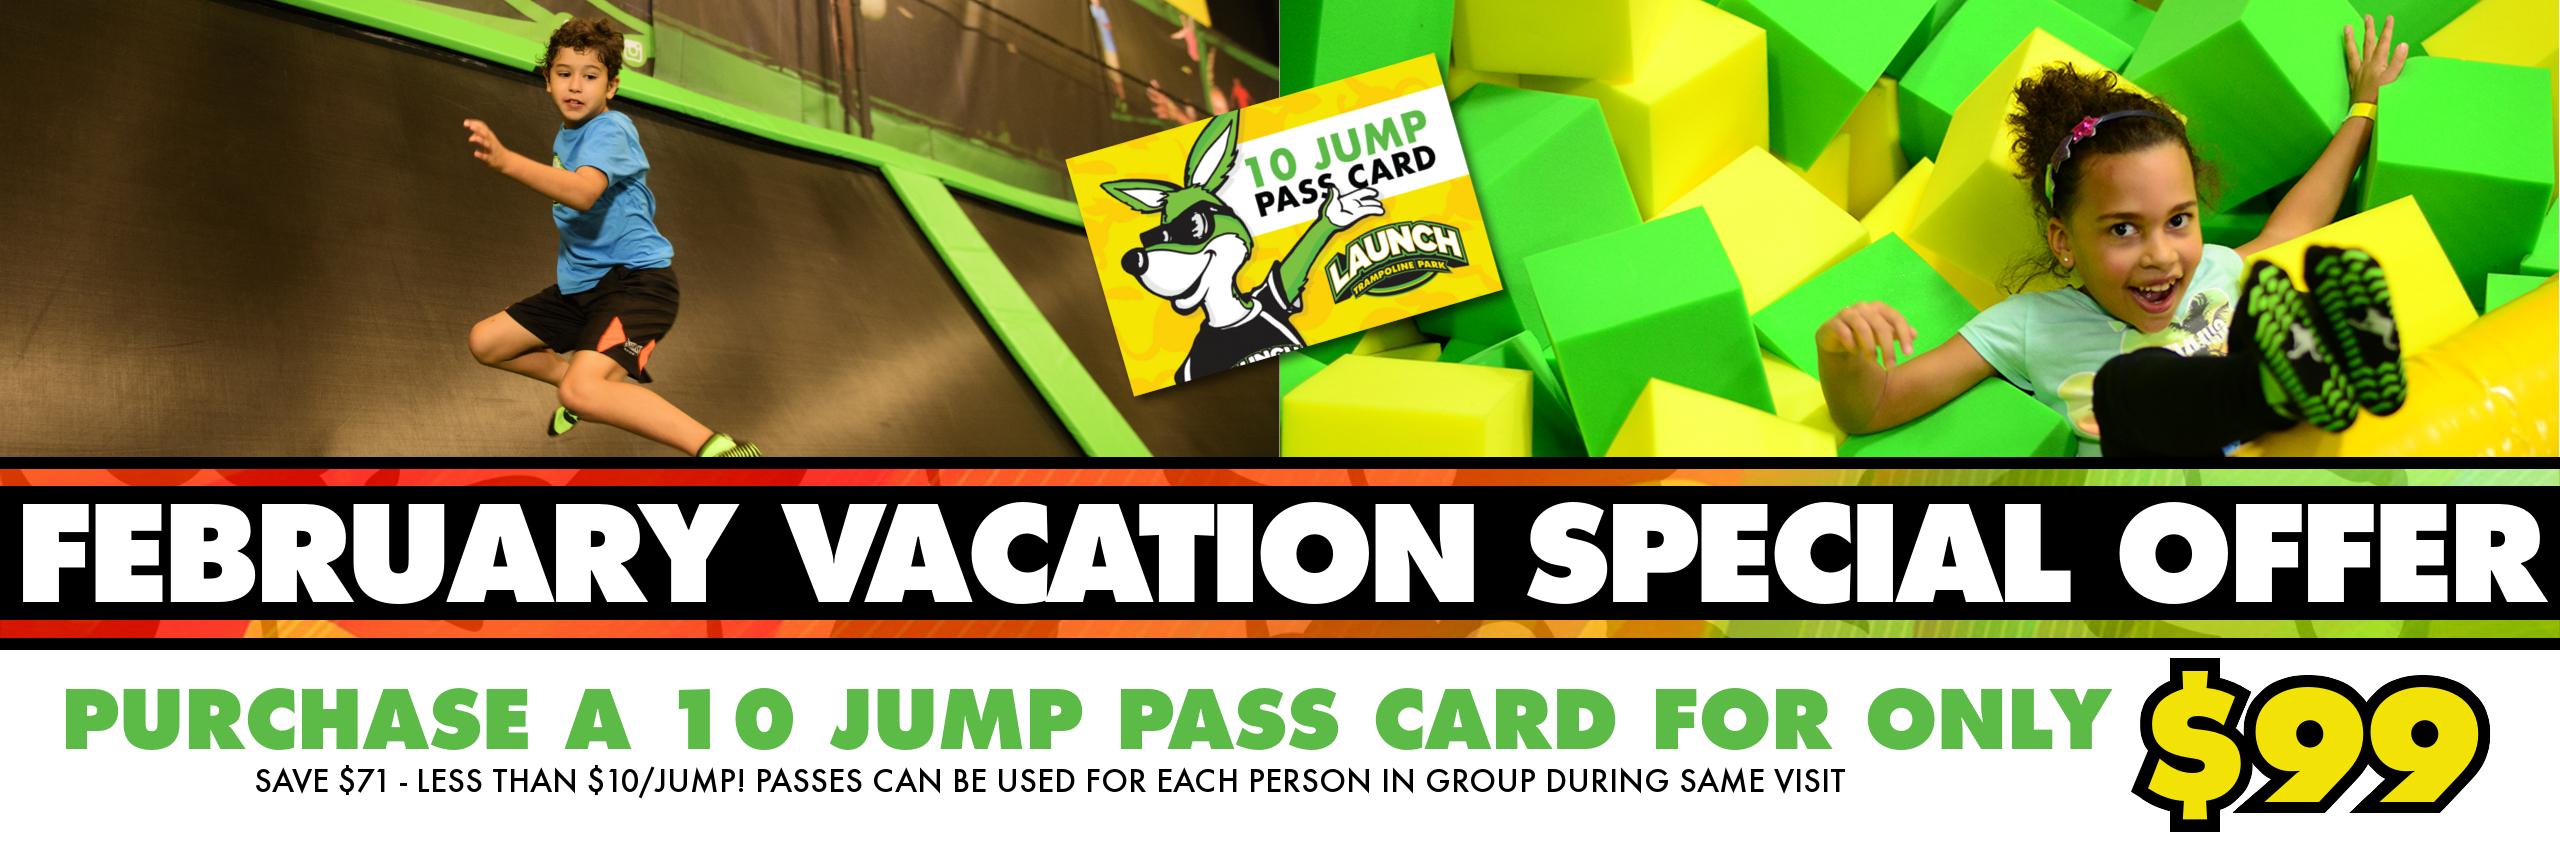 10 Jump for $99 Vaca Special